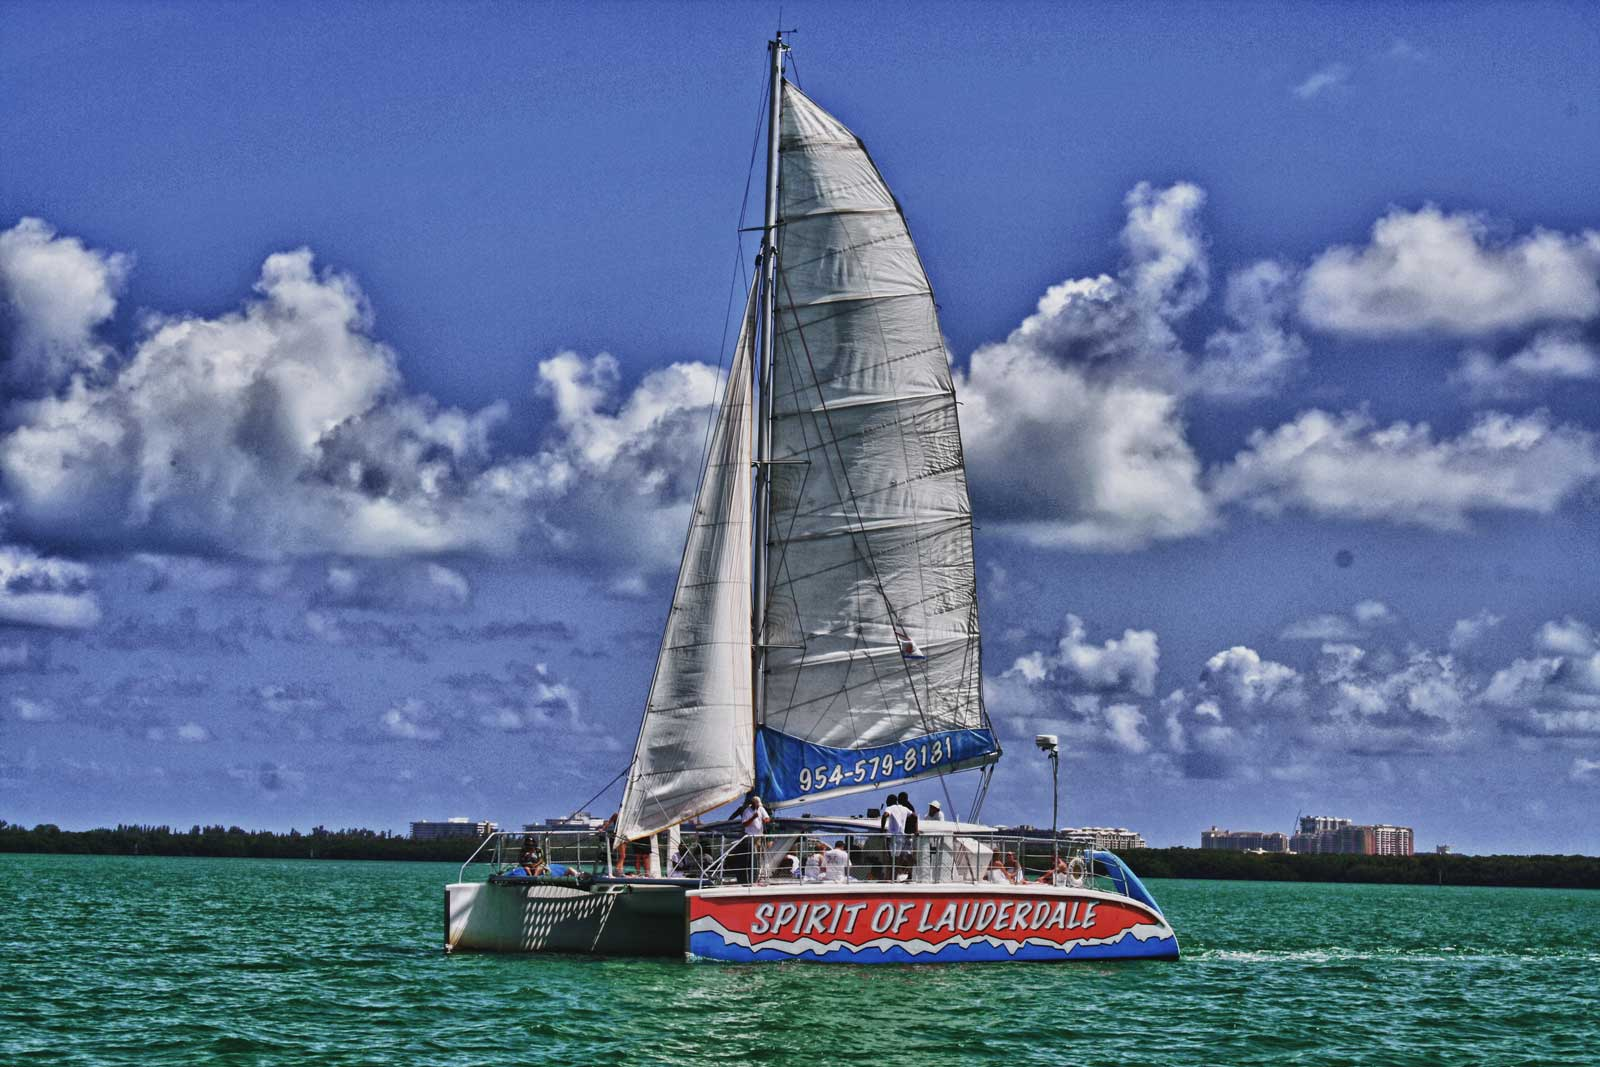 Private Boat Charters Fort Lauderdale Come Sail Awaysailing Miami Yacht Cruise